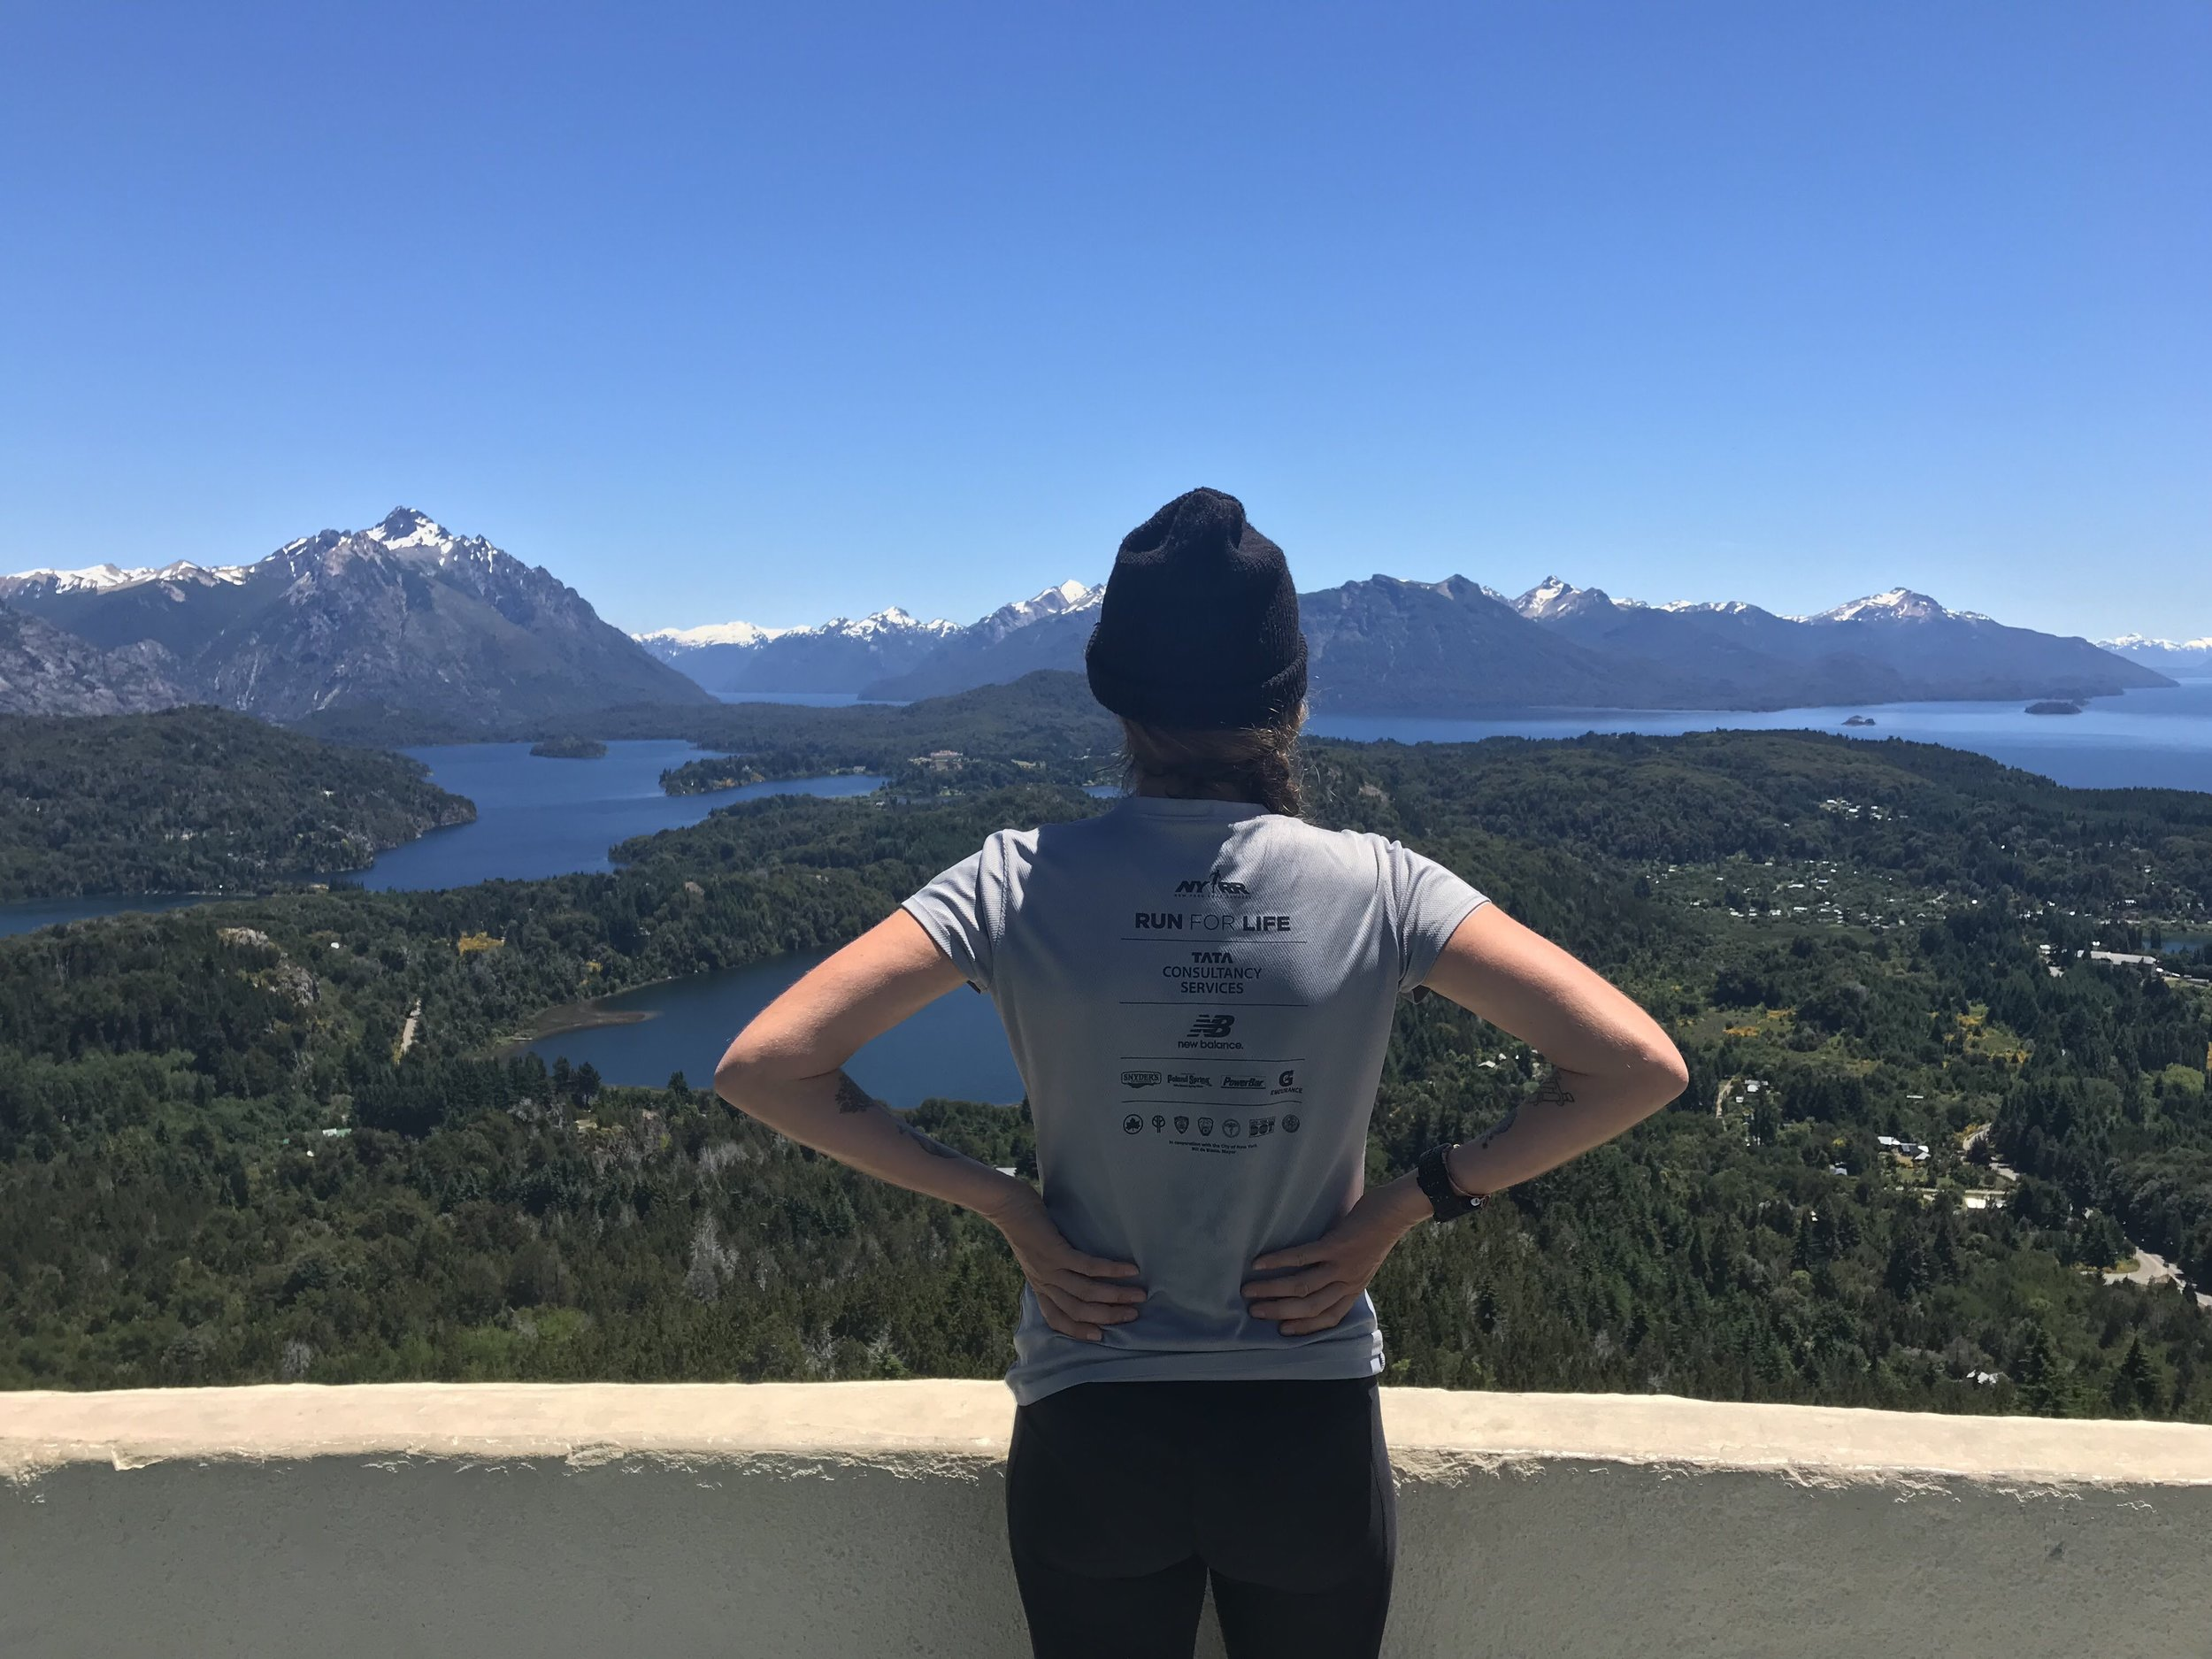 Hiking views in Bariloche, Argentina (Patagonia), December, 2017